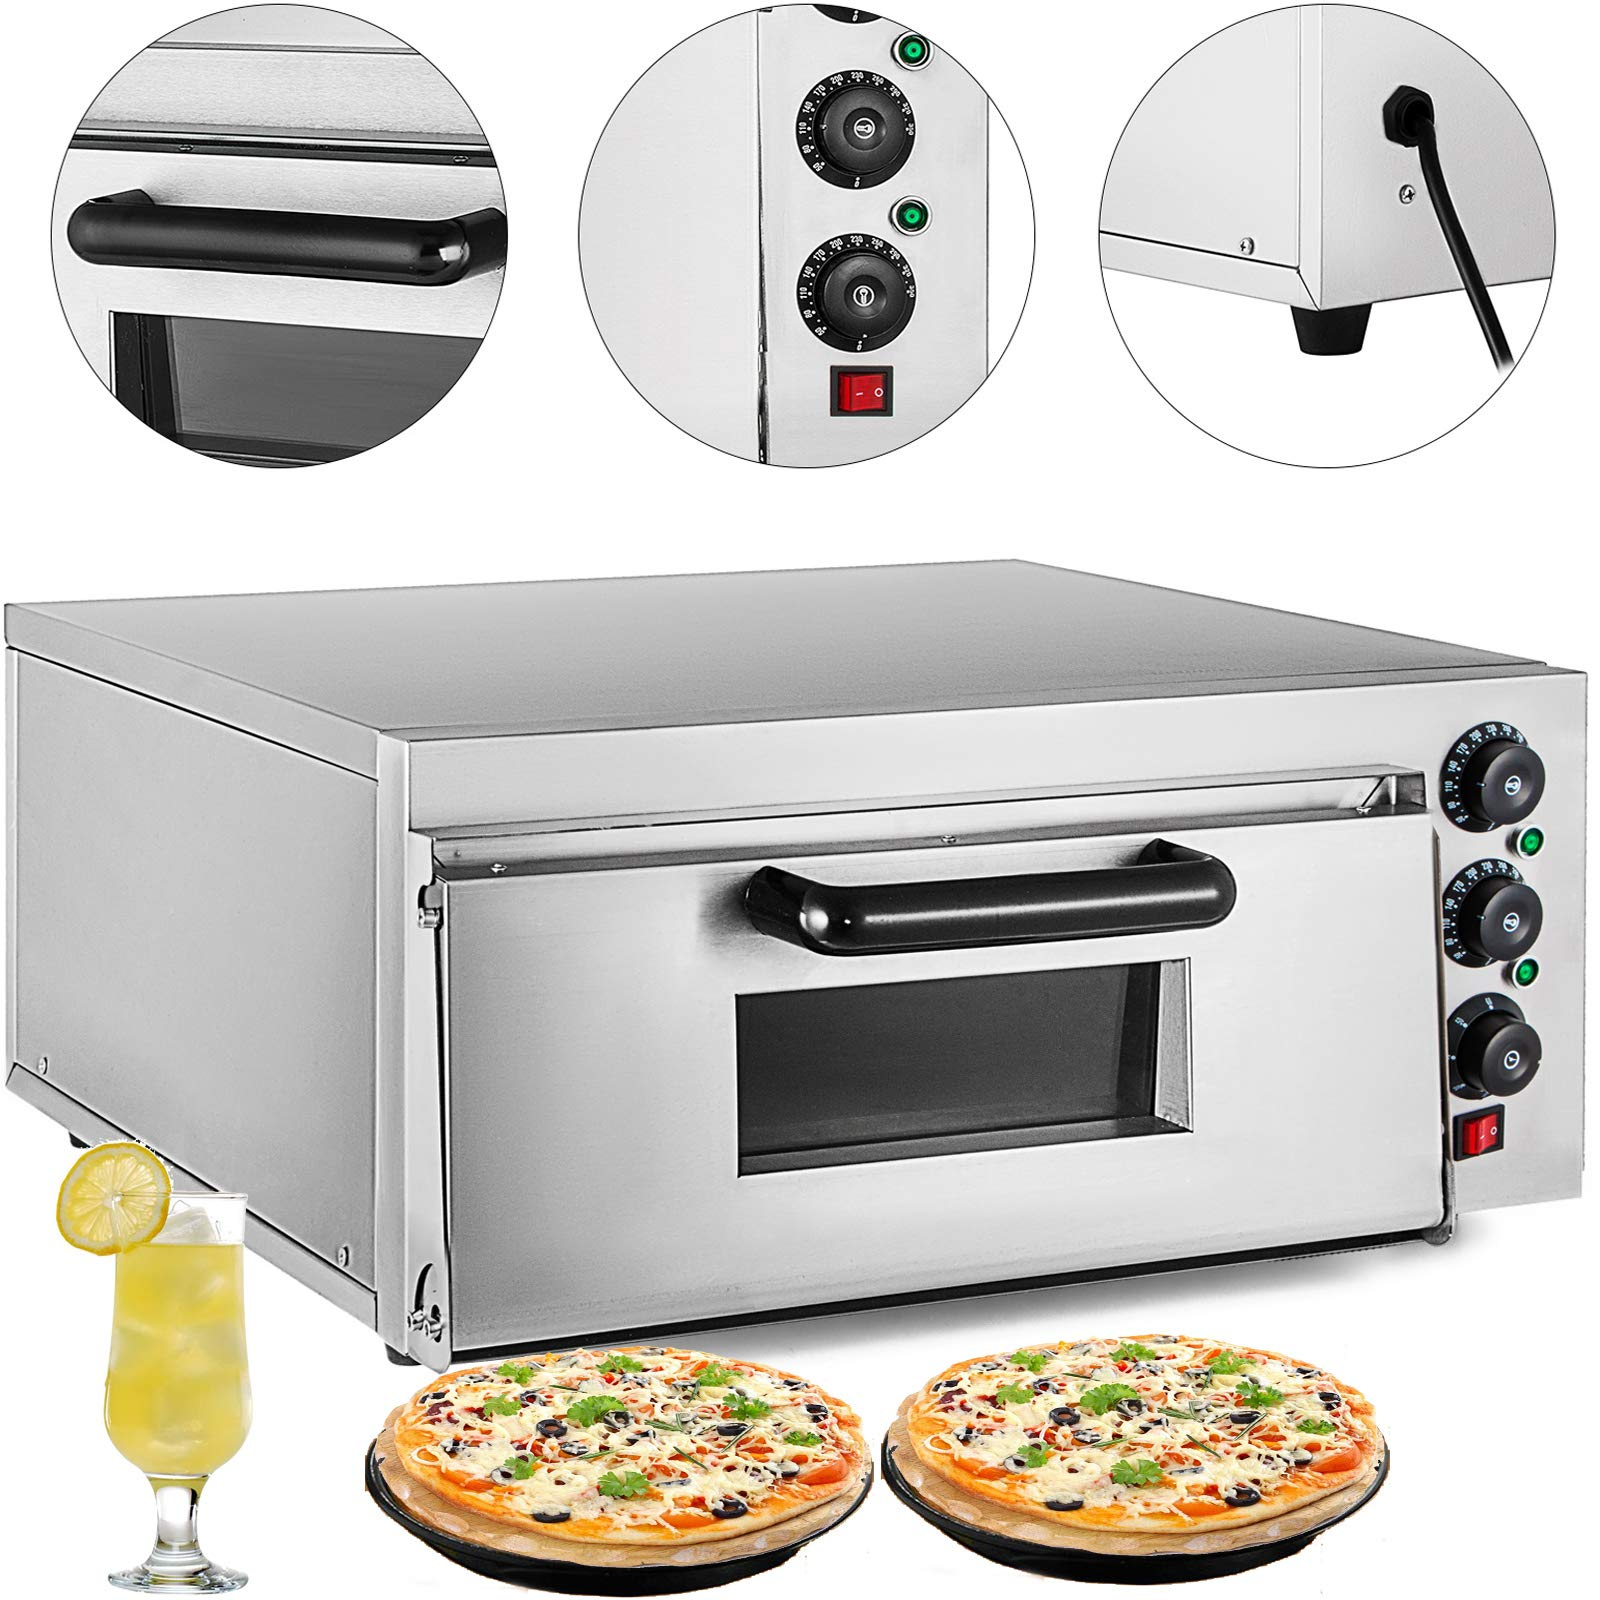 VEVOR Commercial Pizza Oven 2200W Stainless Steel Pizza Oven Countertop 110V Electric Pizza and Snack Oven 16 Inch Deluxe Pizza and Multipurpose Oven for Restaurant Home Pizza Pretzels Baked Dishes